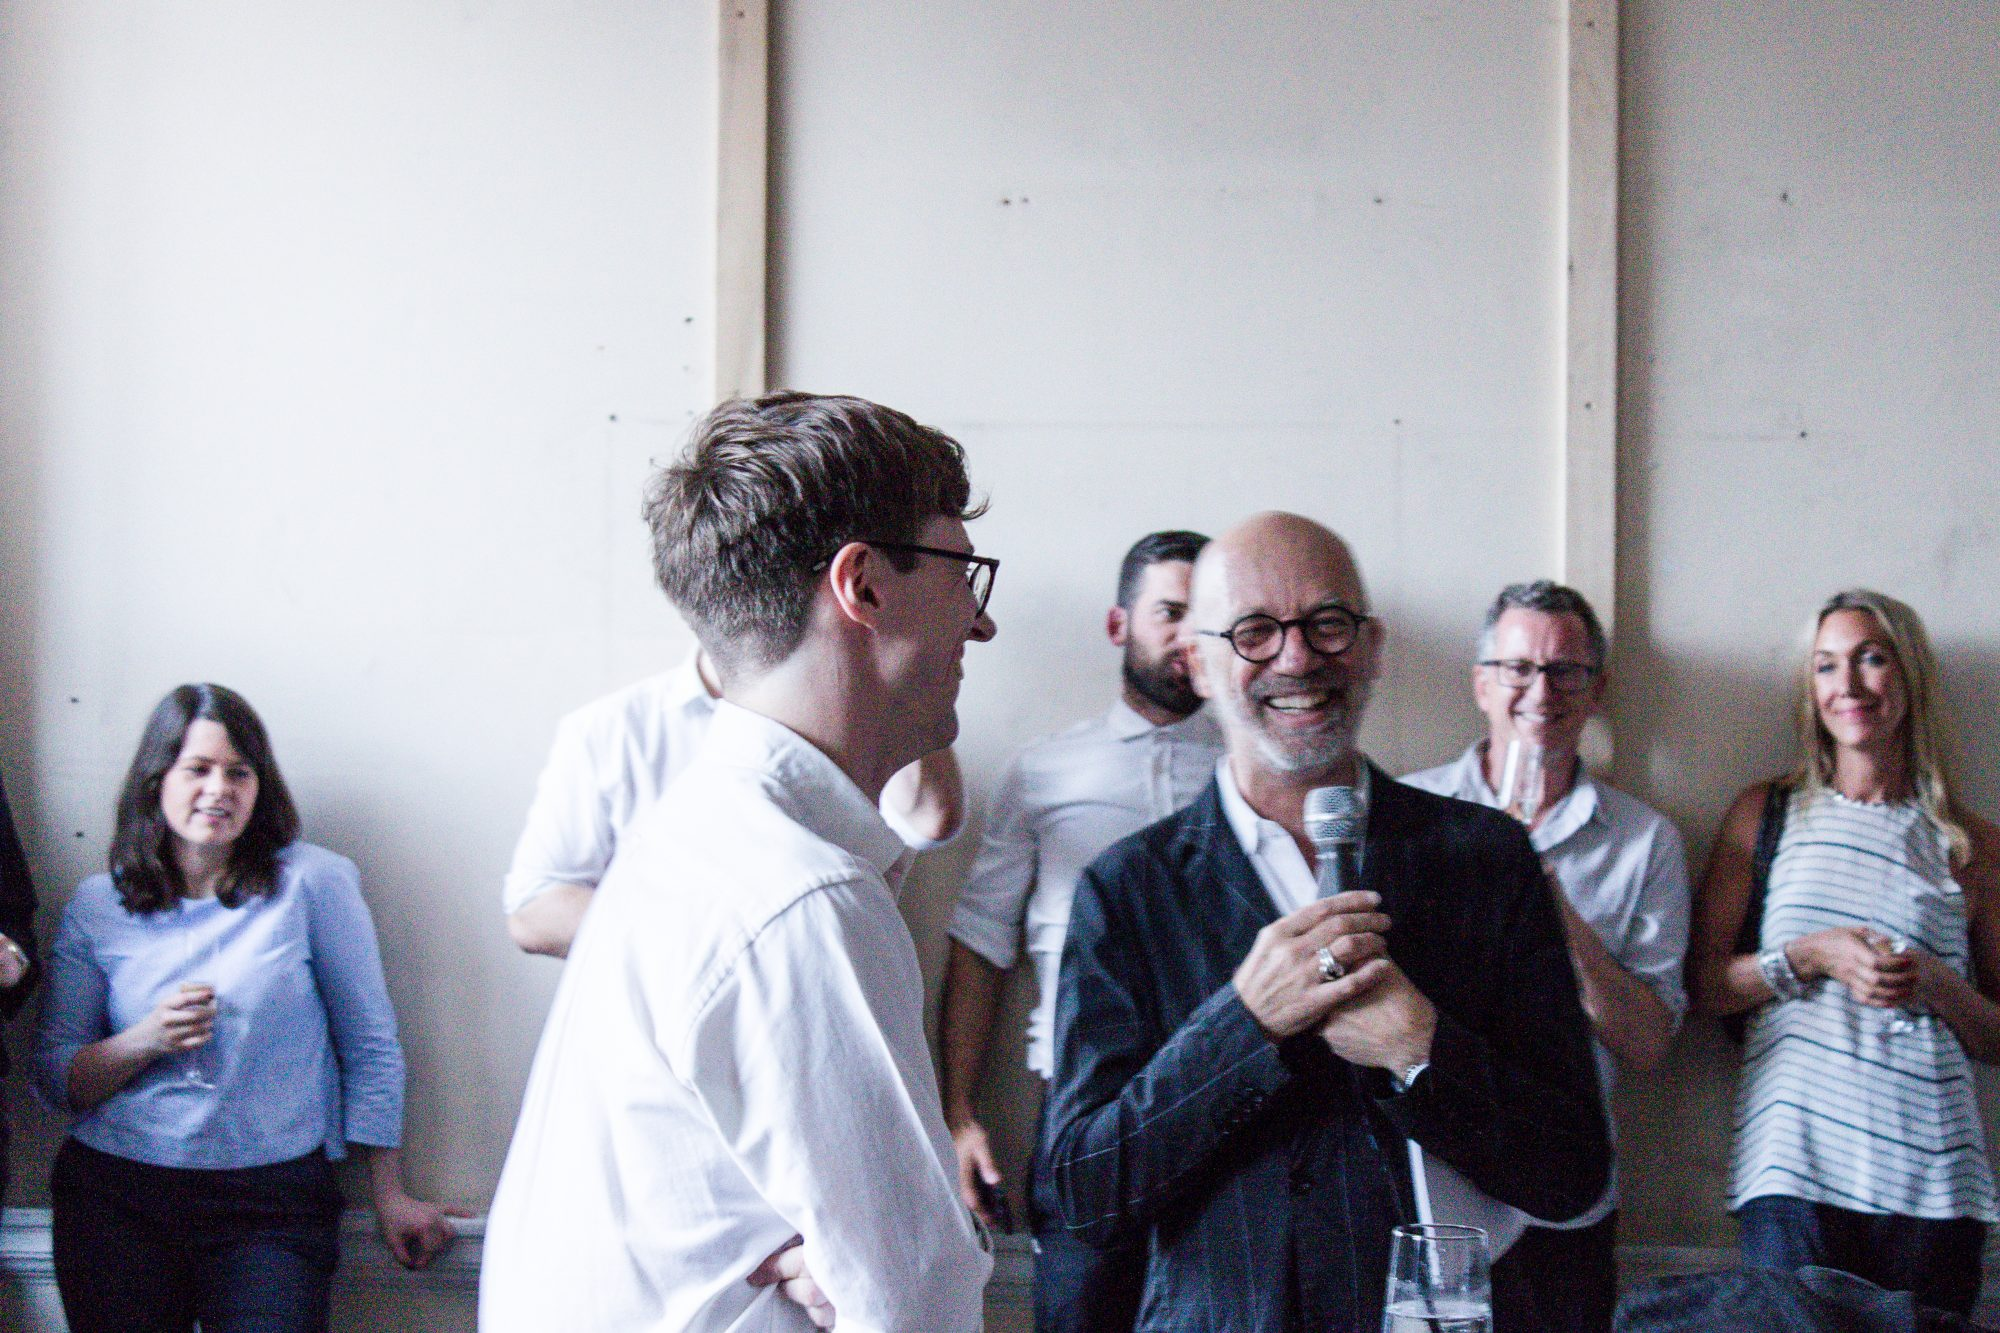 Fig. 5. With Nigel Coates, also photographed at the LSA's first summer show; Lewis Kinneir, Clive Sall and Kate Stirling in the background.